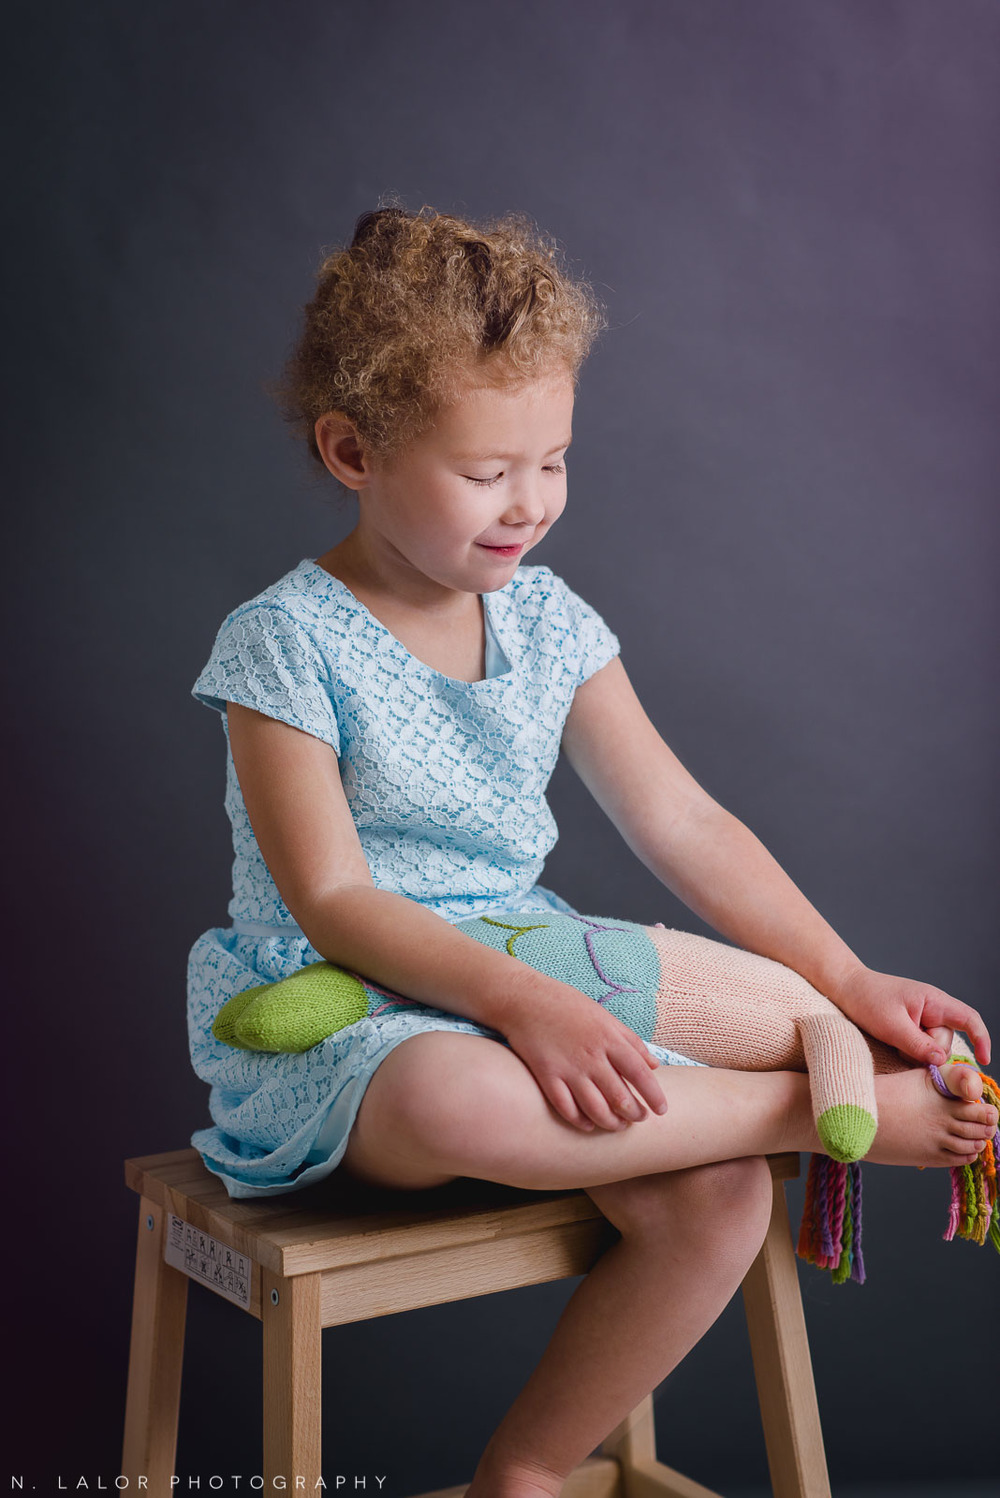 Editorial studio portrait of a 4-year old girl by N. Lalor Photography. Greenwich, CT.